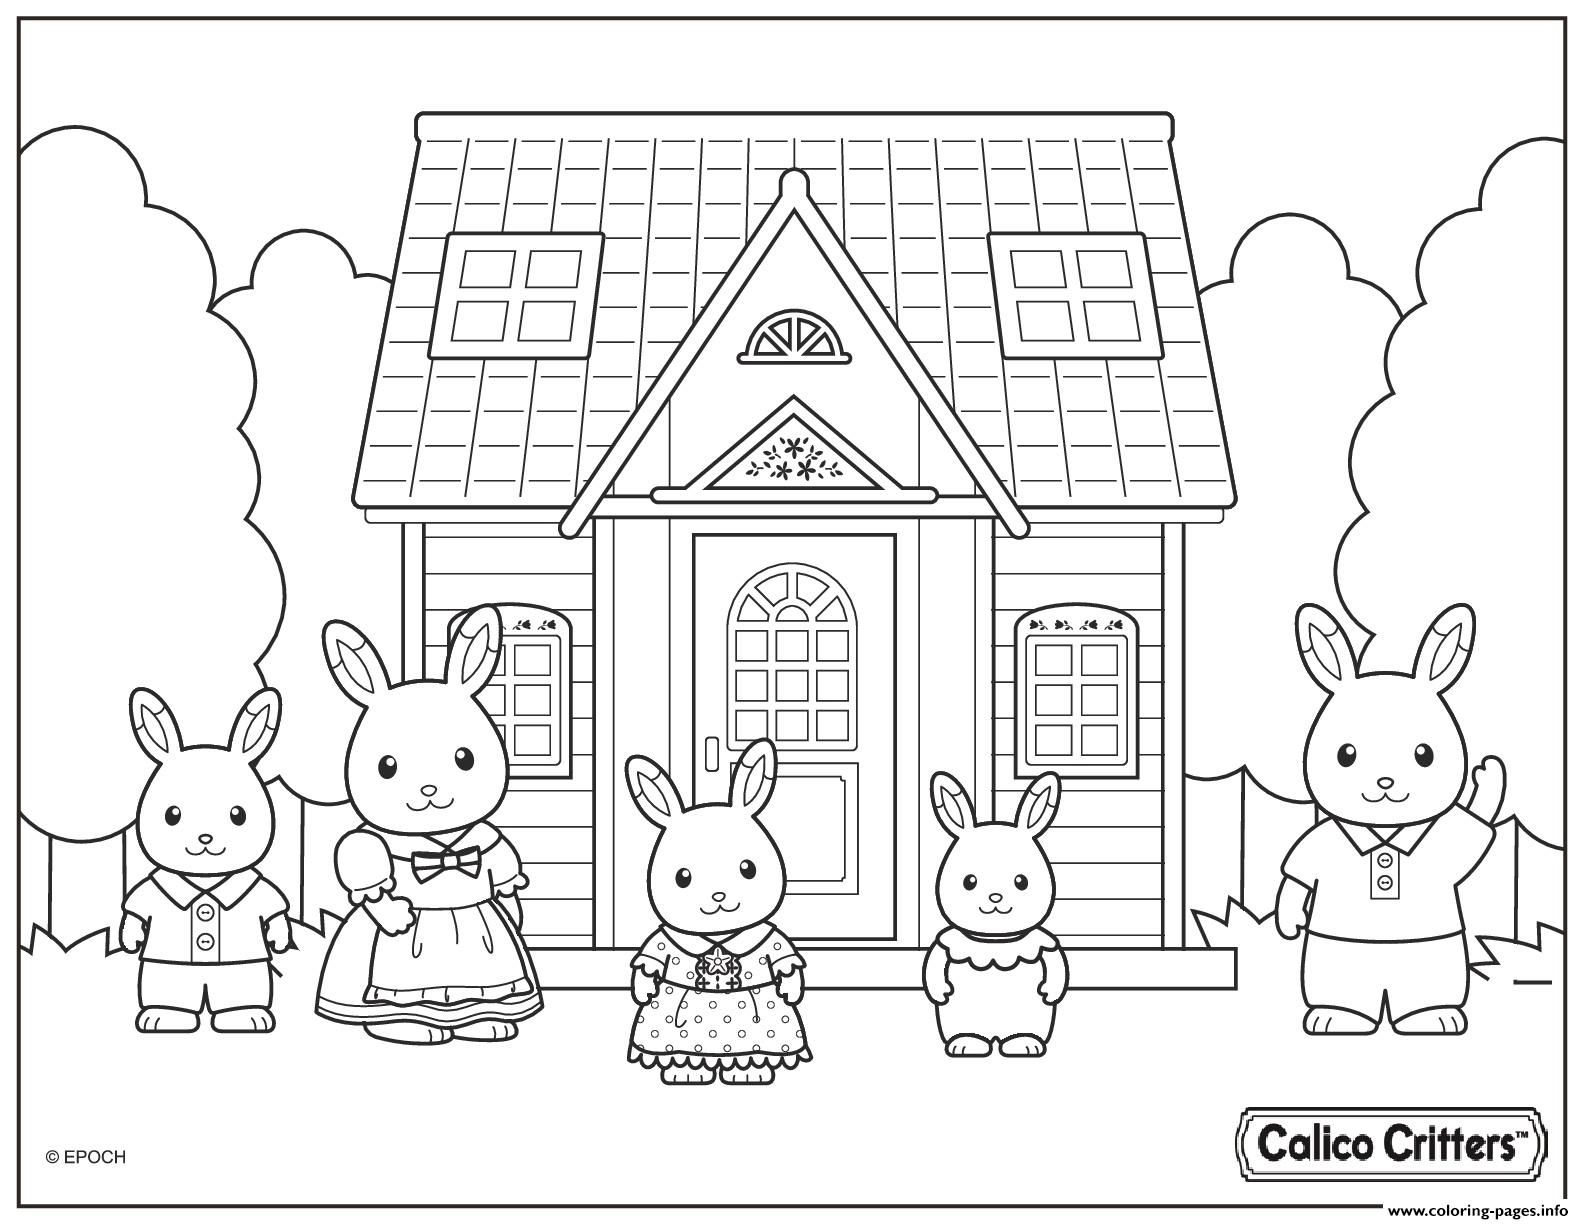 Calico Critters Cute Family Coloring Pages Family Coloring Pages